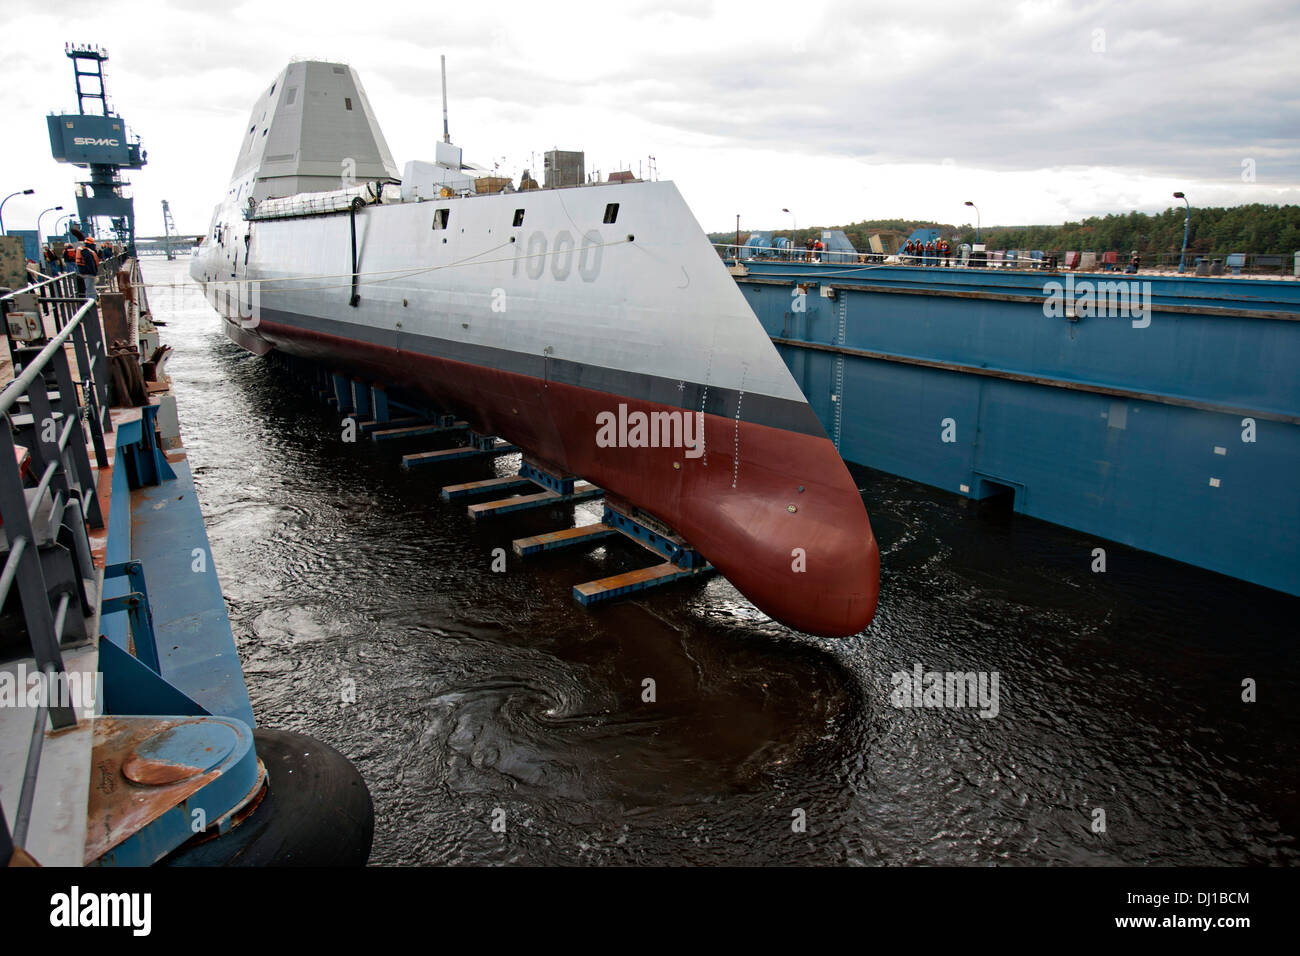 The Zumwalt-class guided-missile destroyer USS Zumwalt is floated out of dry dock at the General Dynamics Bath Iron Works shipyard October 28, 2013 in Bath, Maine. The ship, the first of three Zumwalt-class destroyers is the latest generation of naval technology. - Stock Image